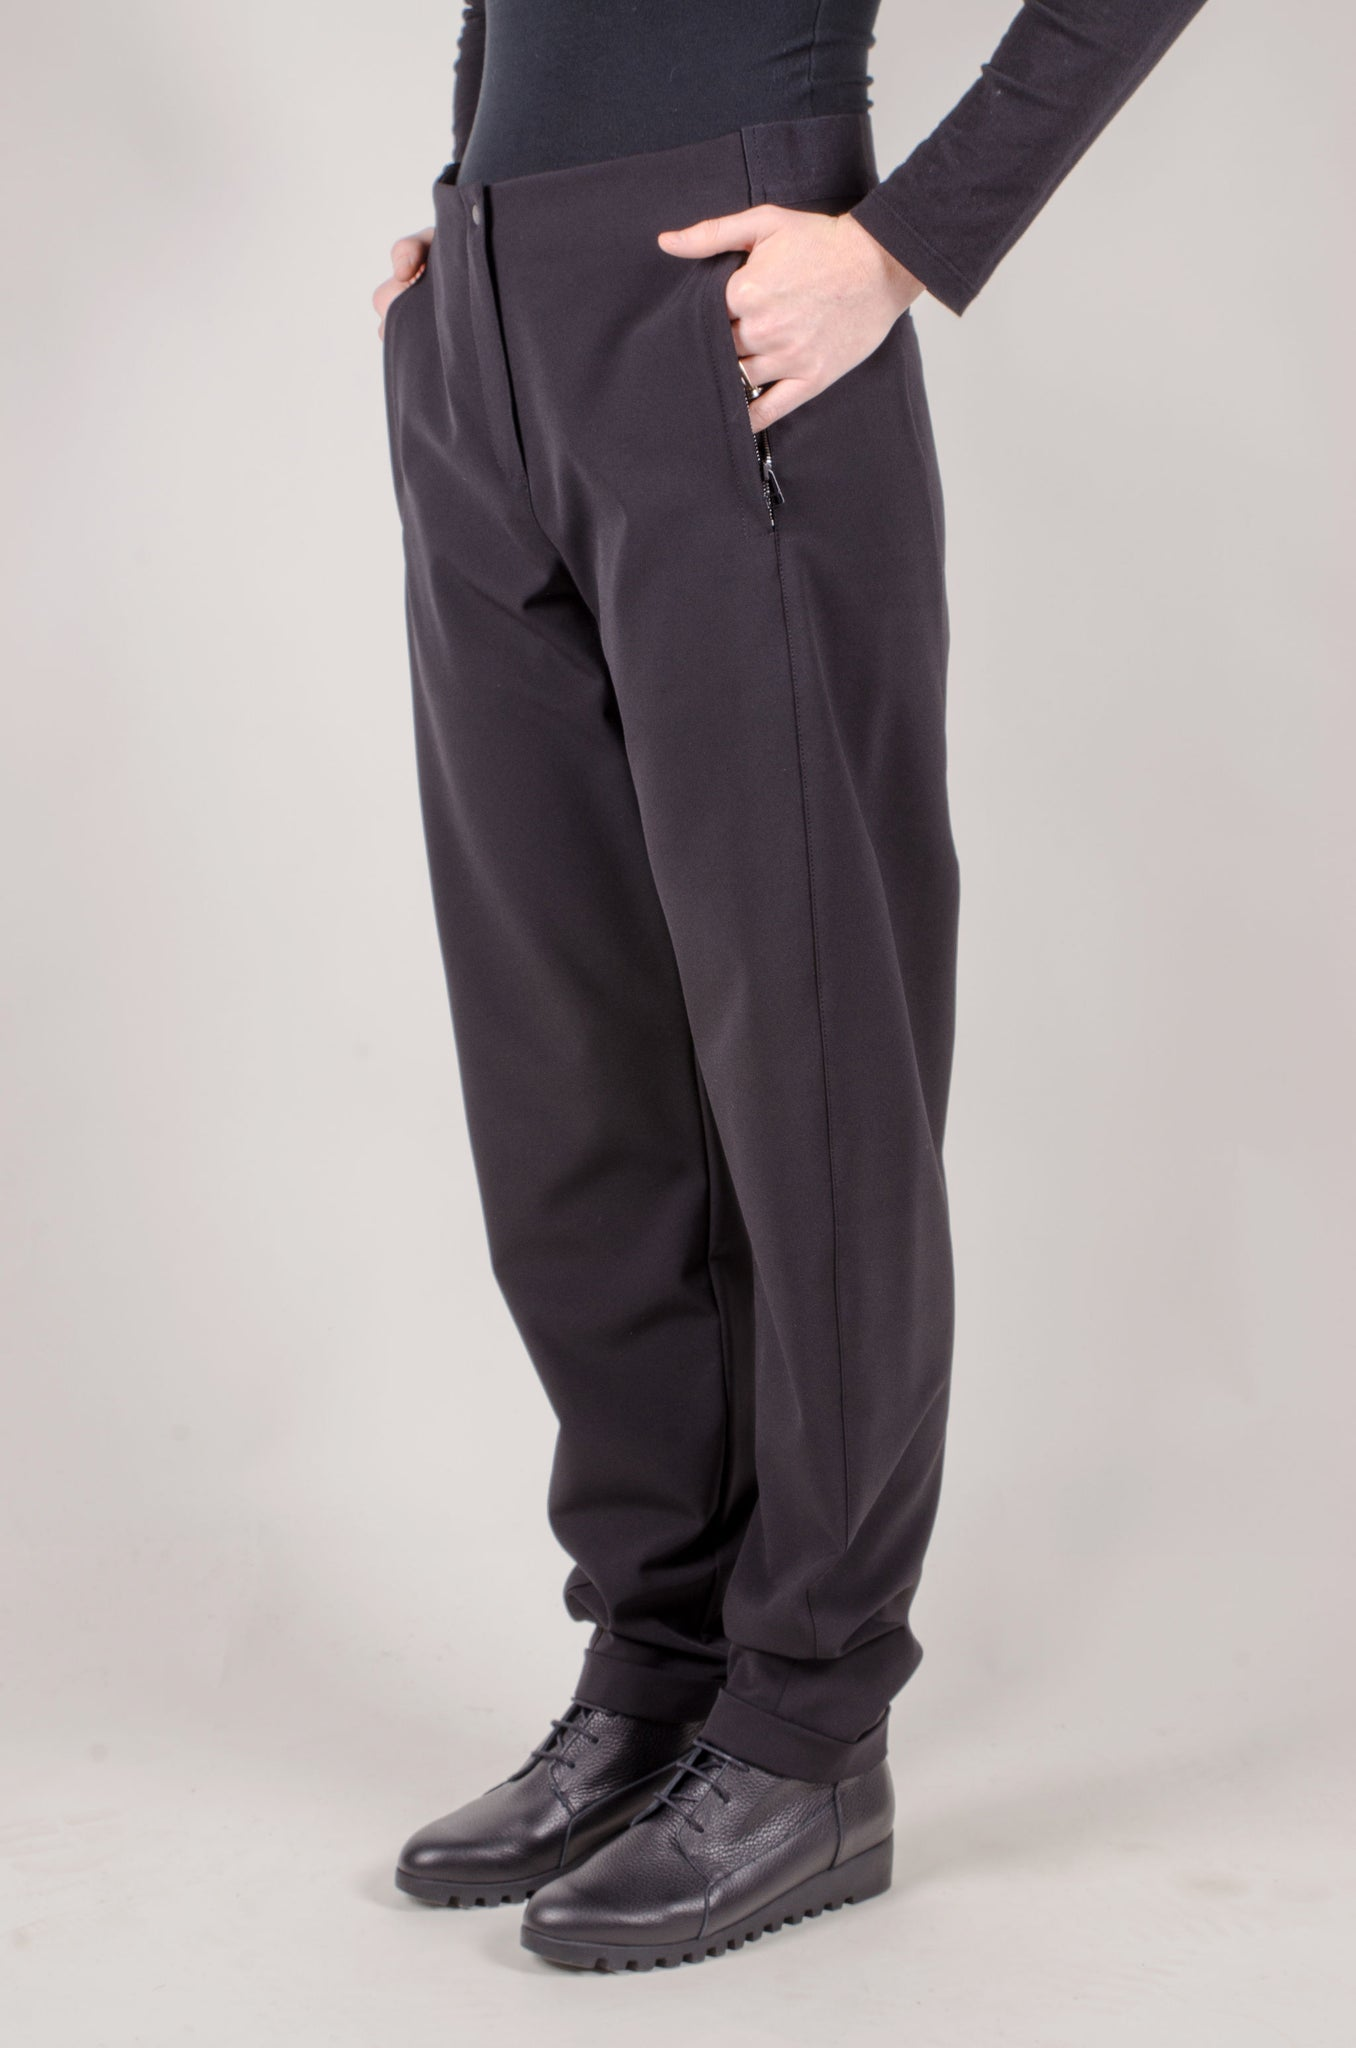 ANNETTE GÖRTZ - Pepe Straight Leg Trousers - Black